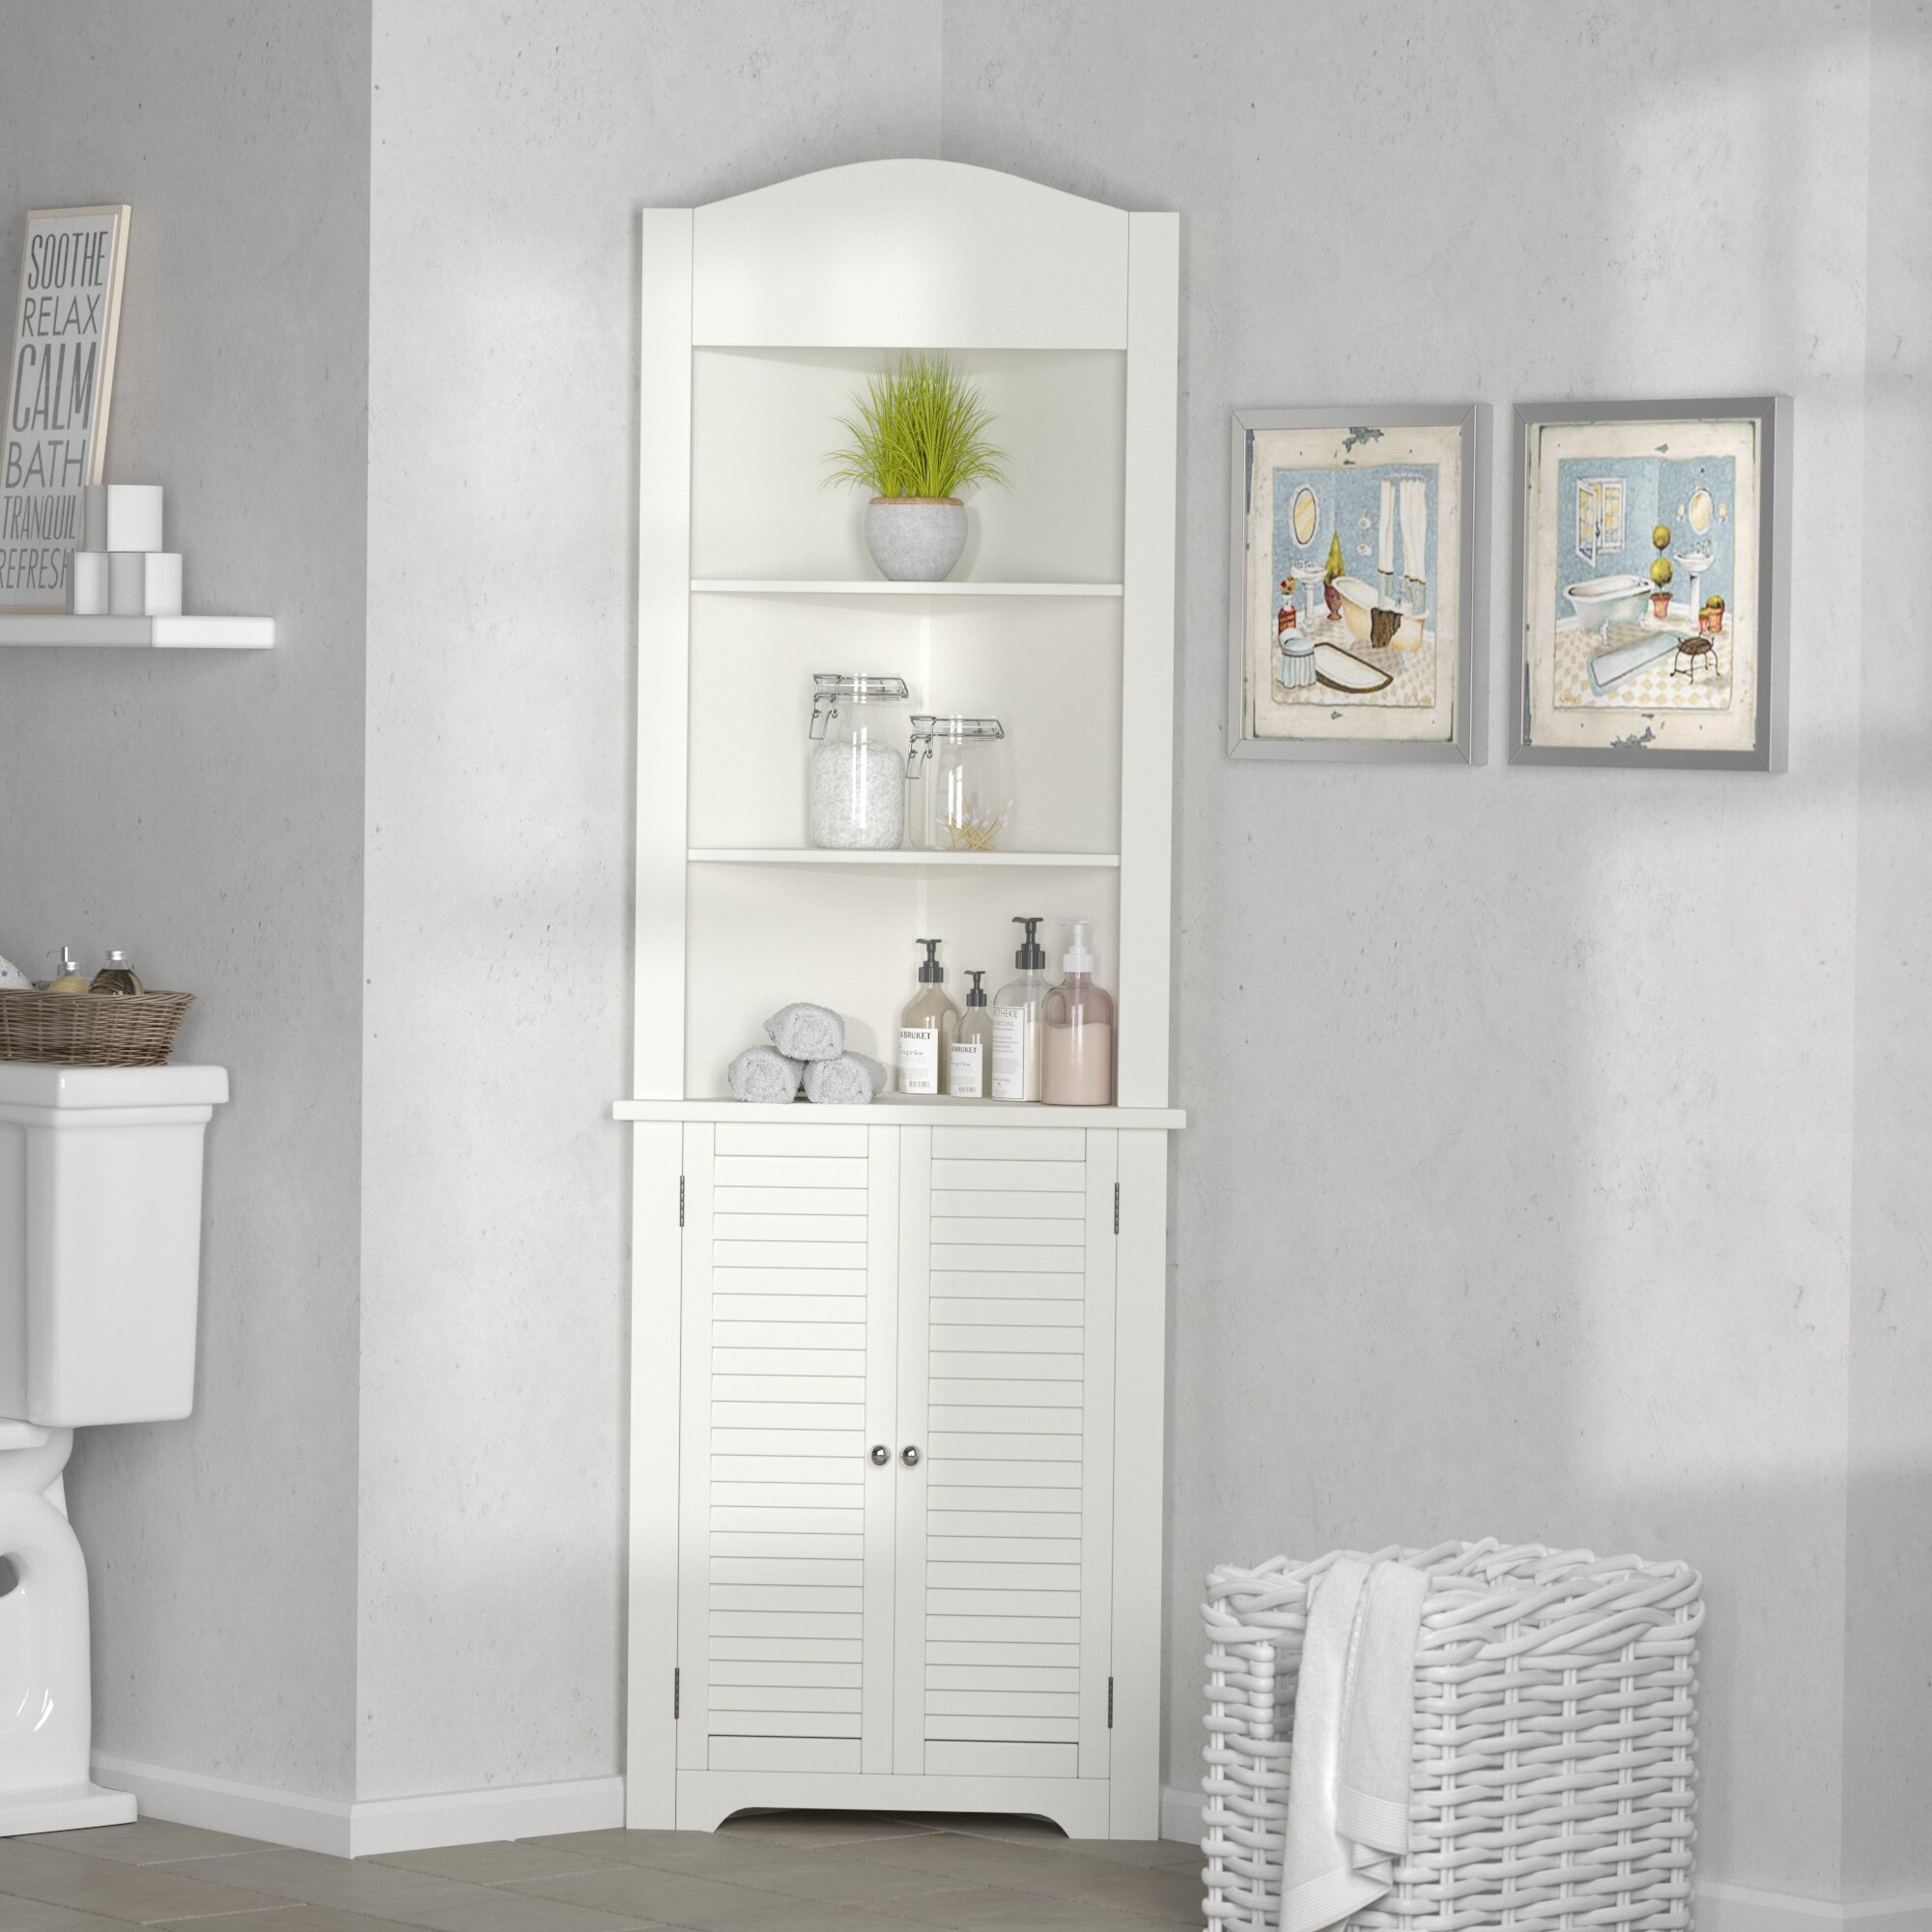 Longshore Tides Ellsworth 59 X 174cm Corner Free Standing Cabinet Reviews Wayfair Co Uk